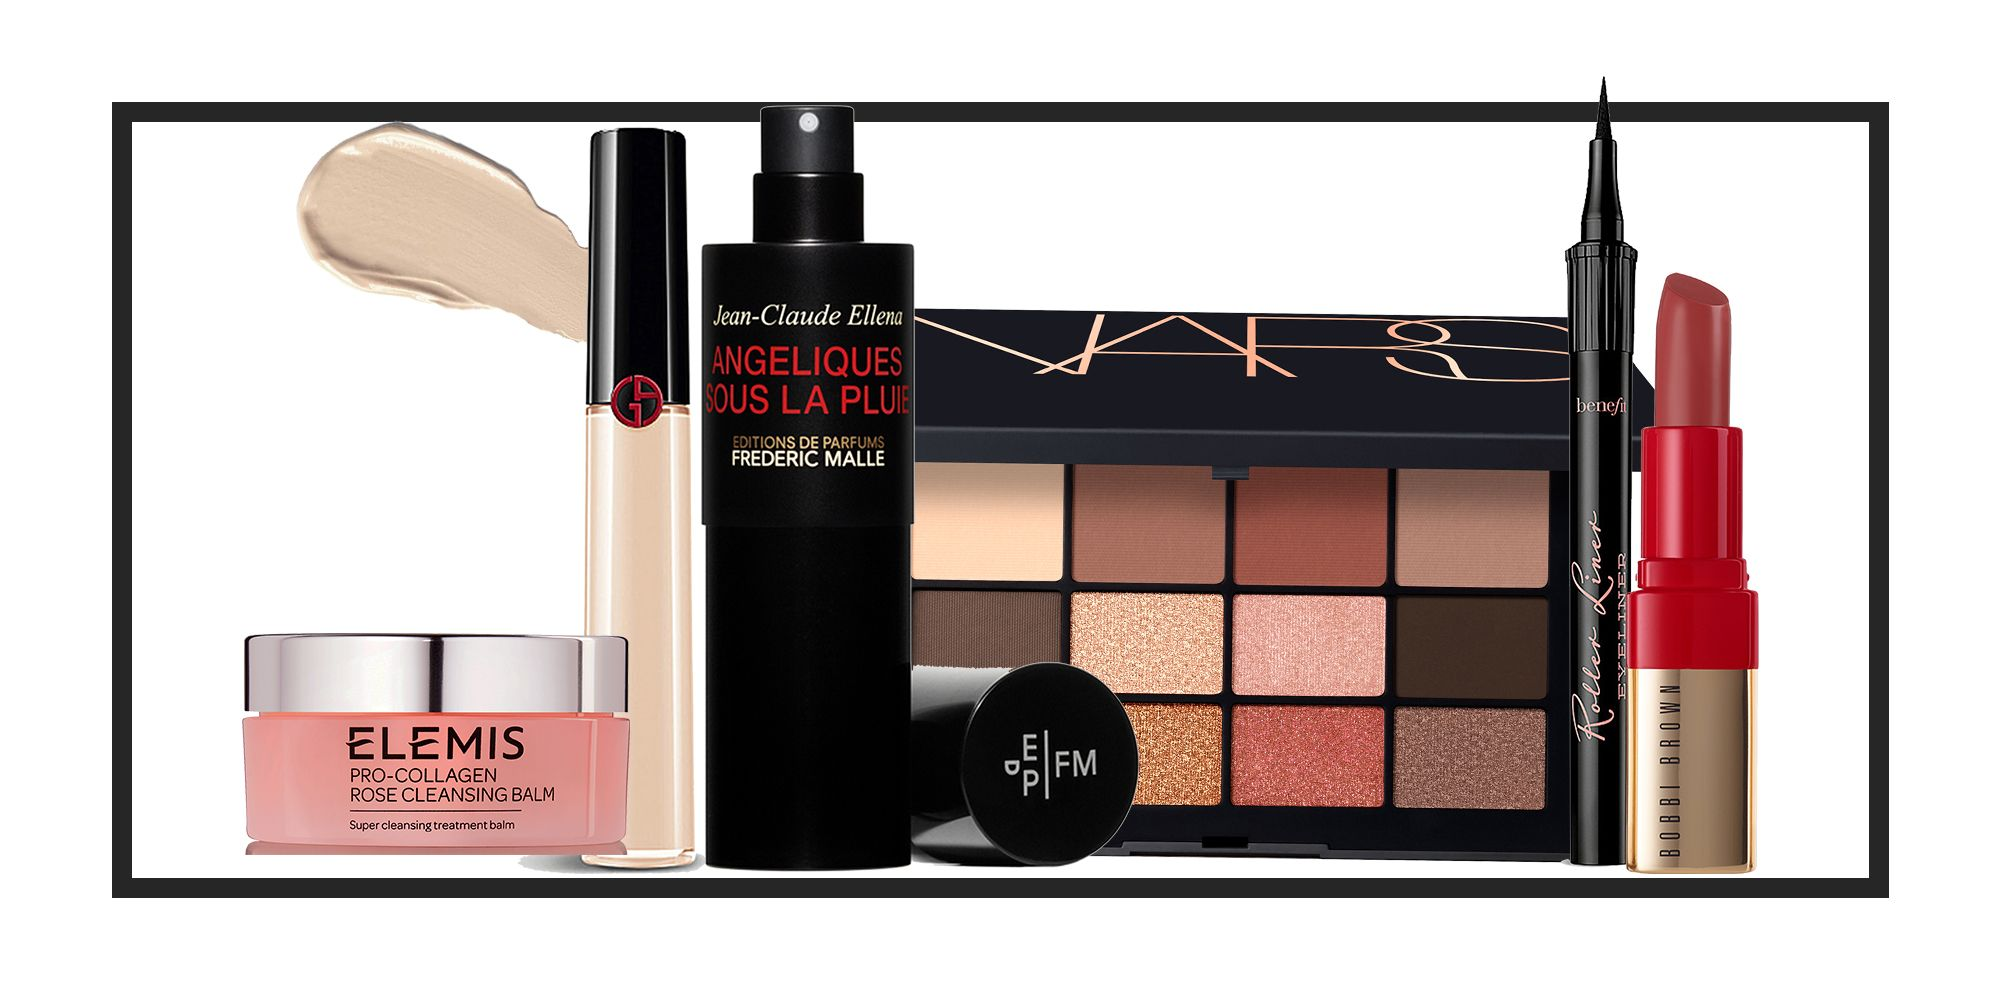 January 2019 beauty launches